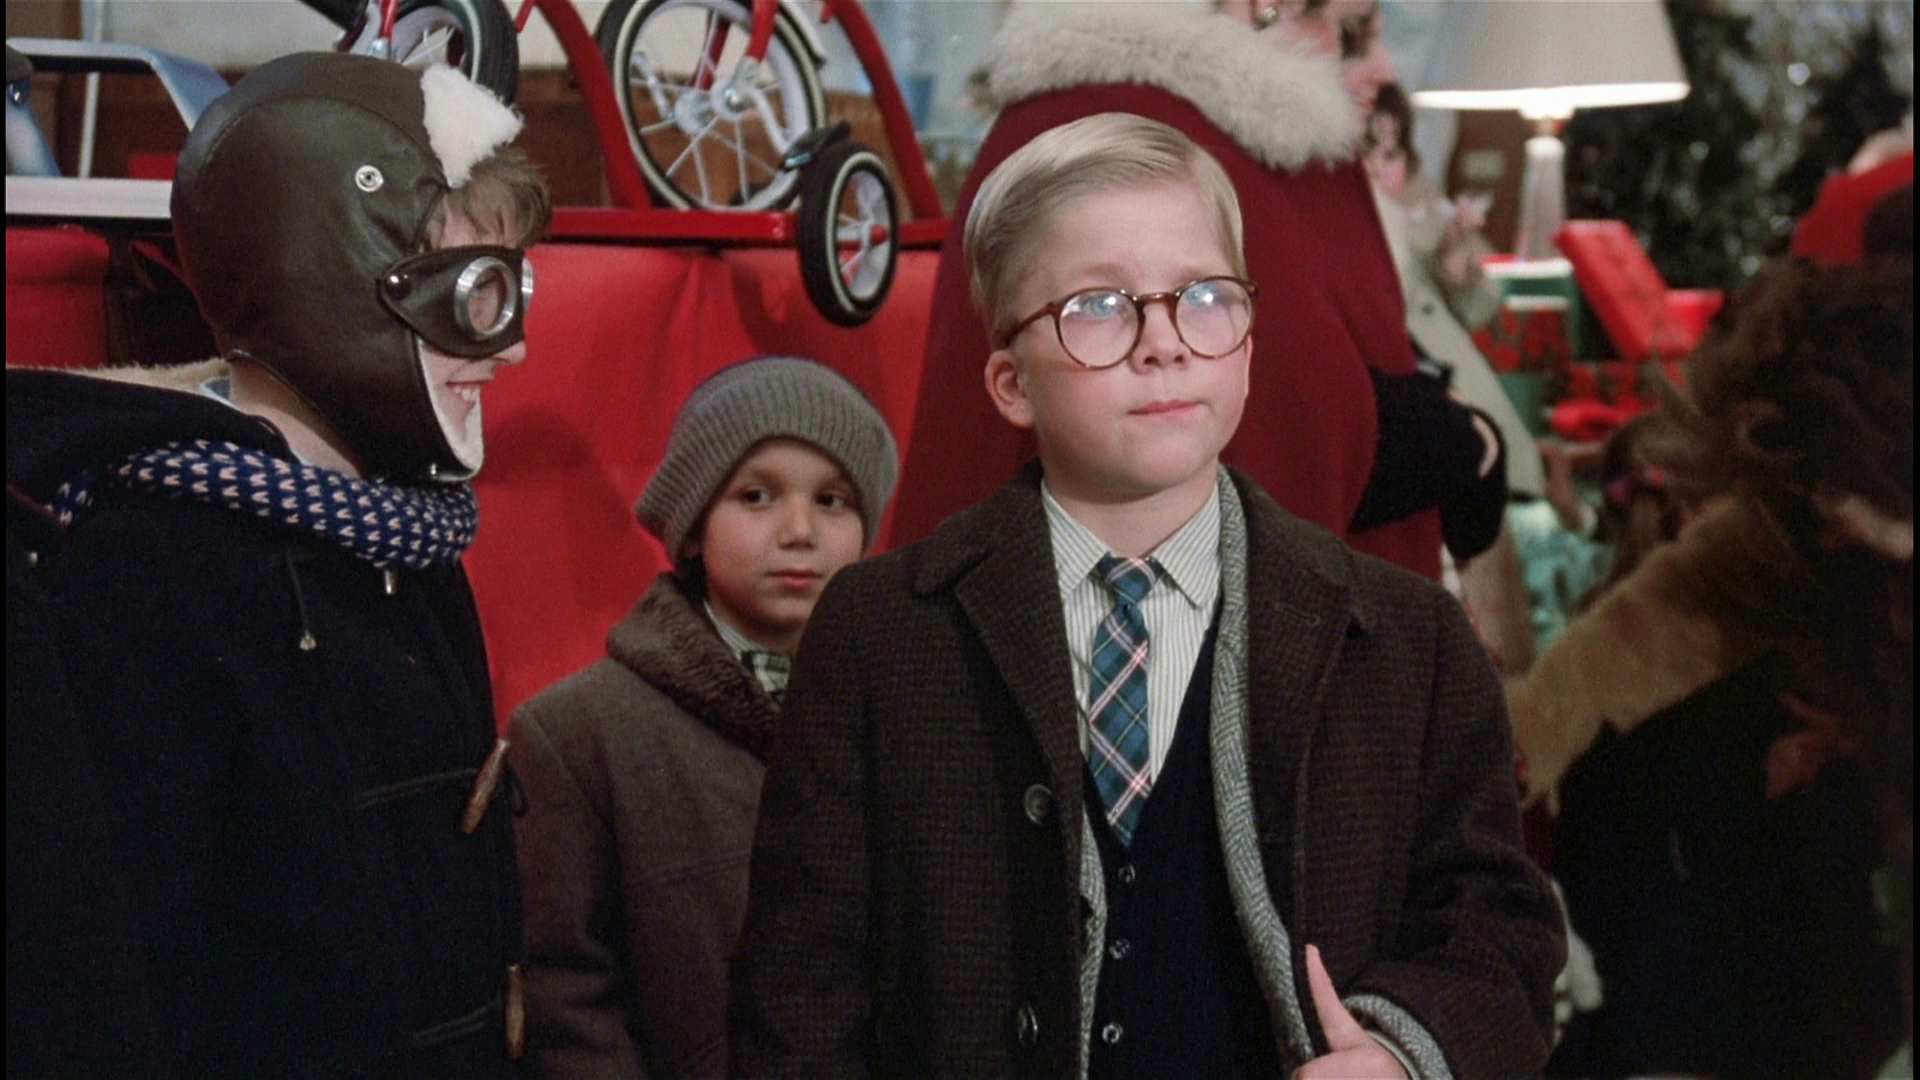 so this is who narrates a christmas story